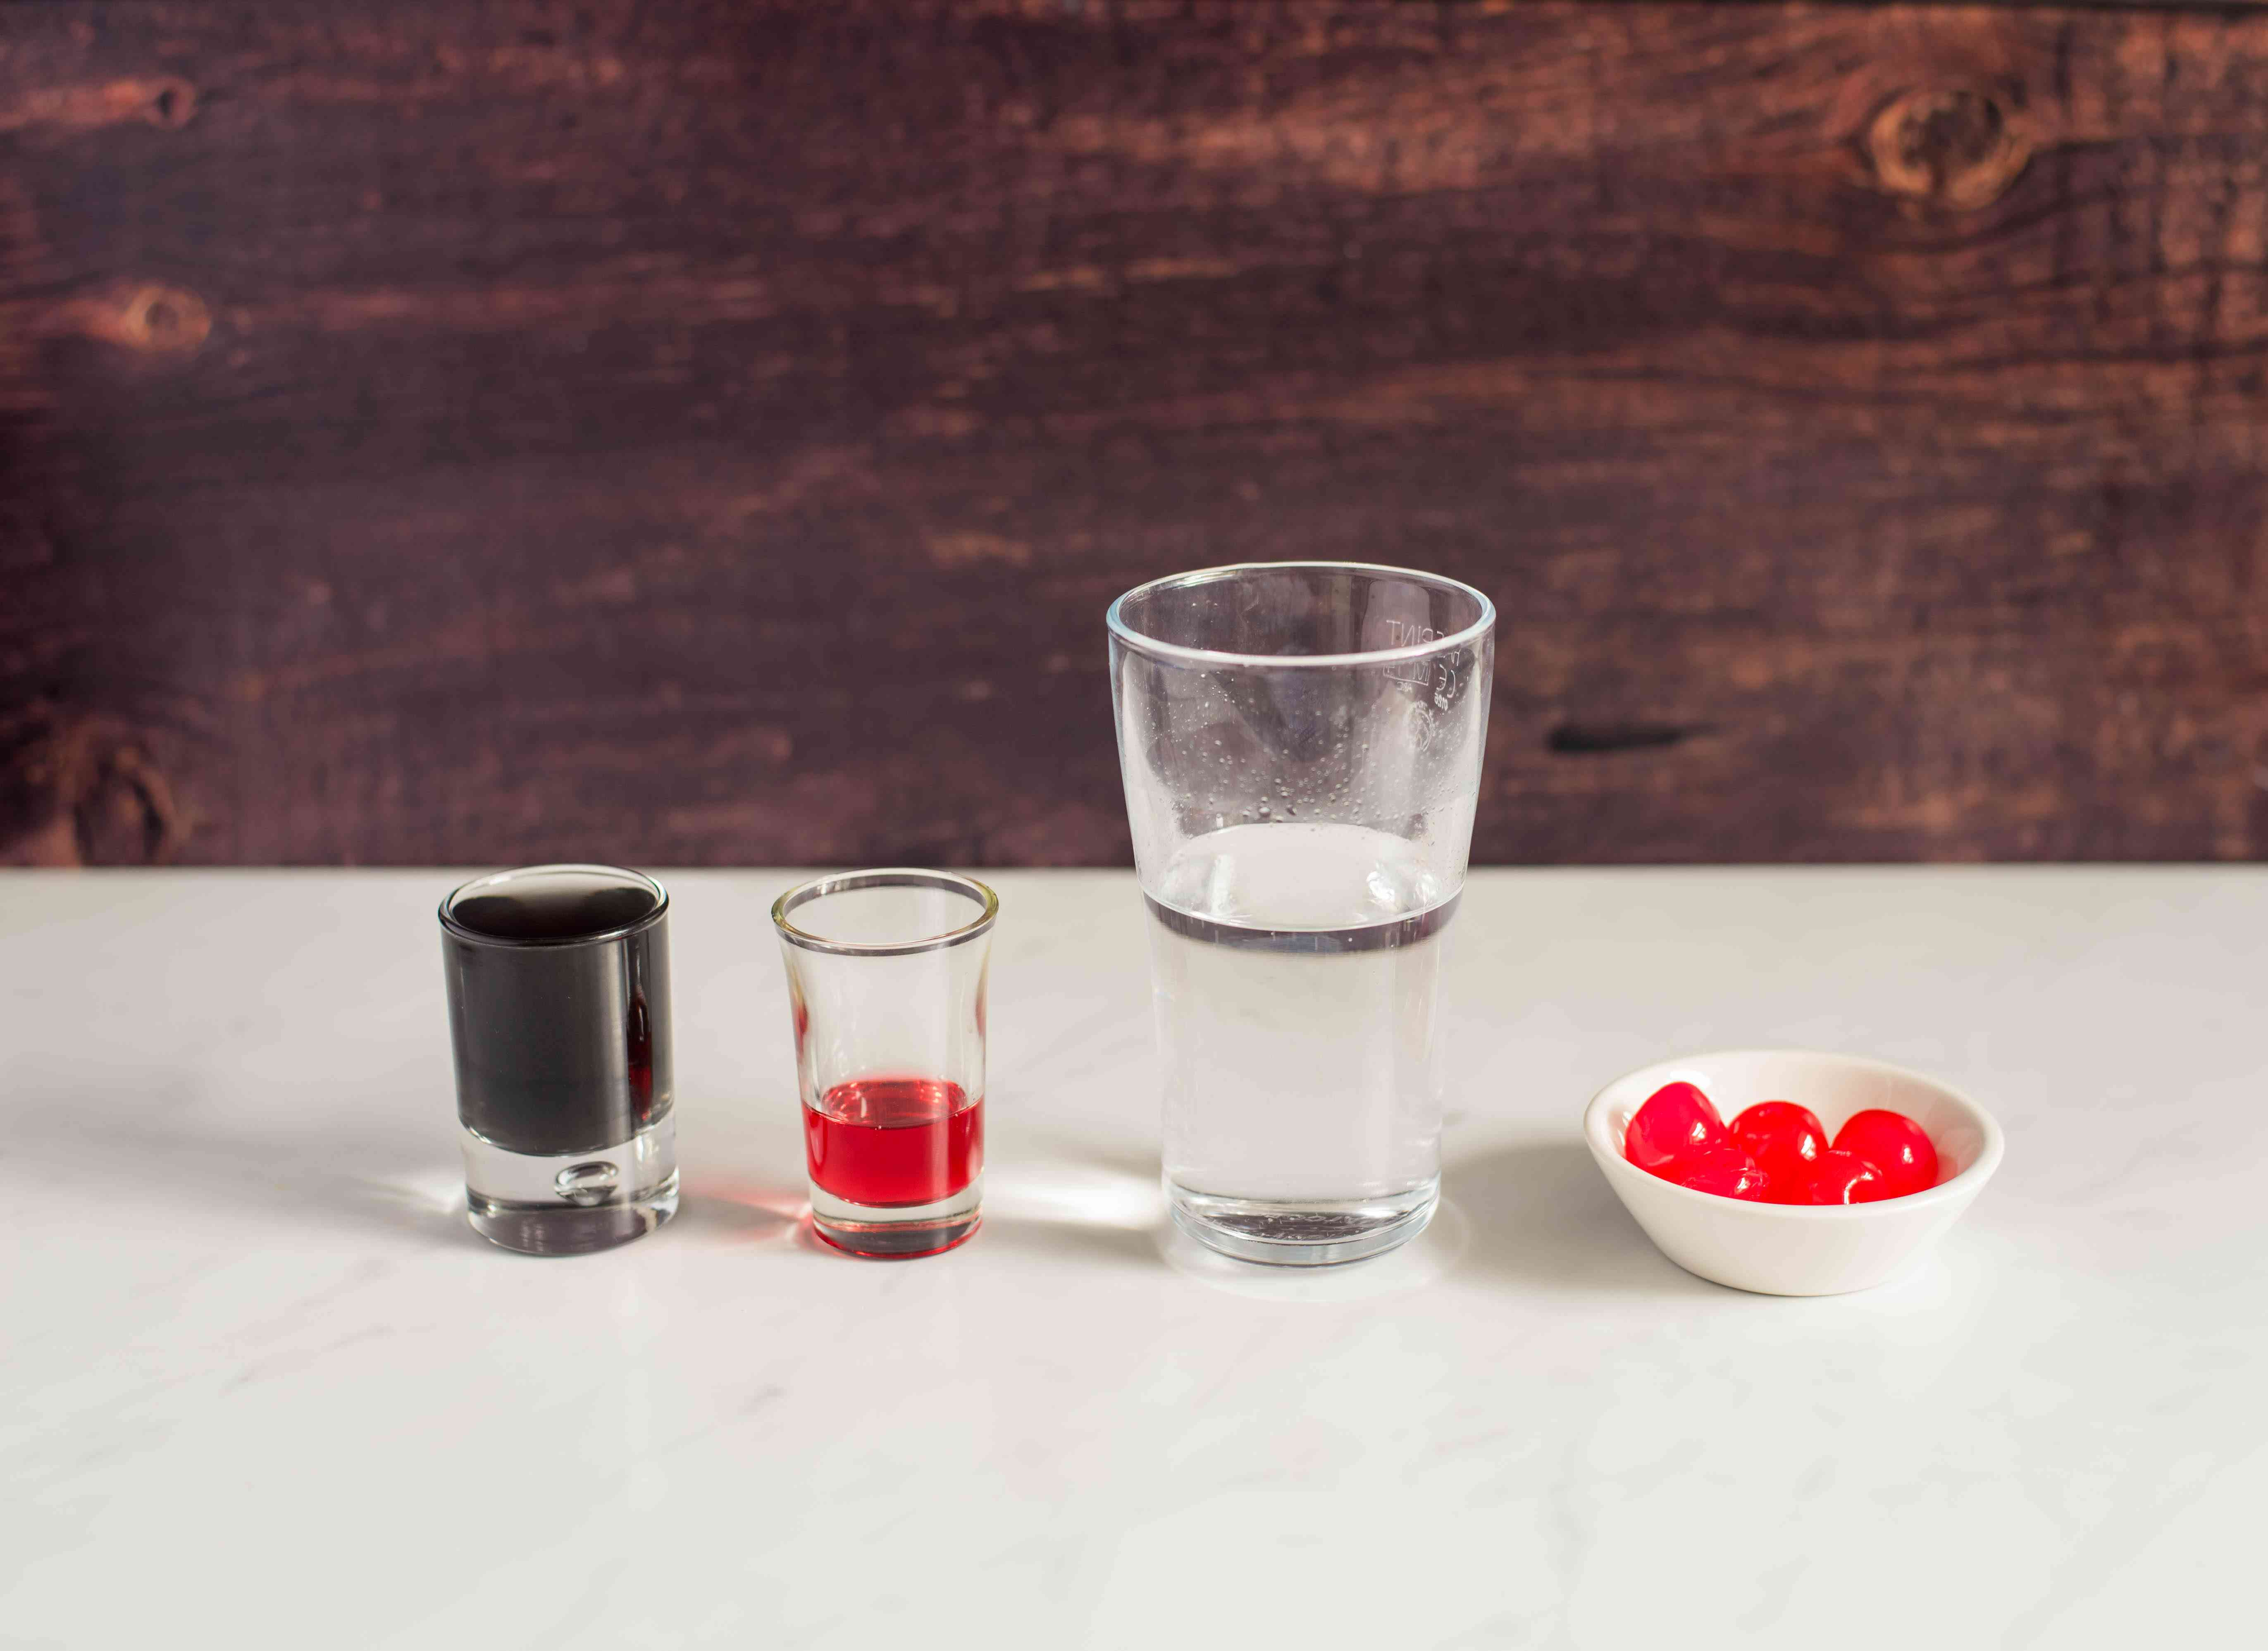 Ingredients for black magic cocktail